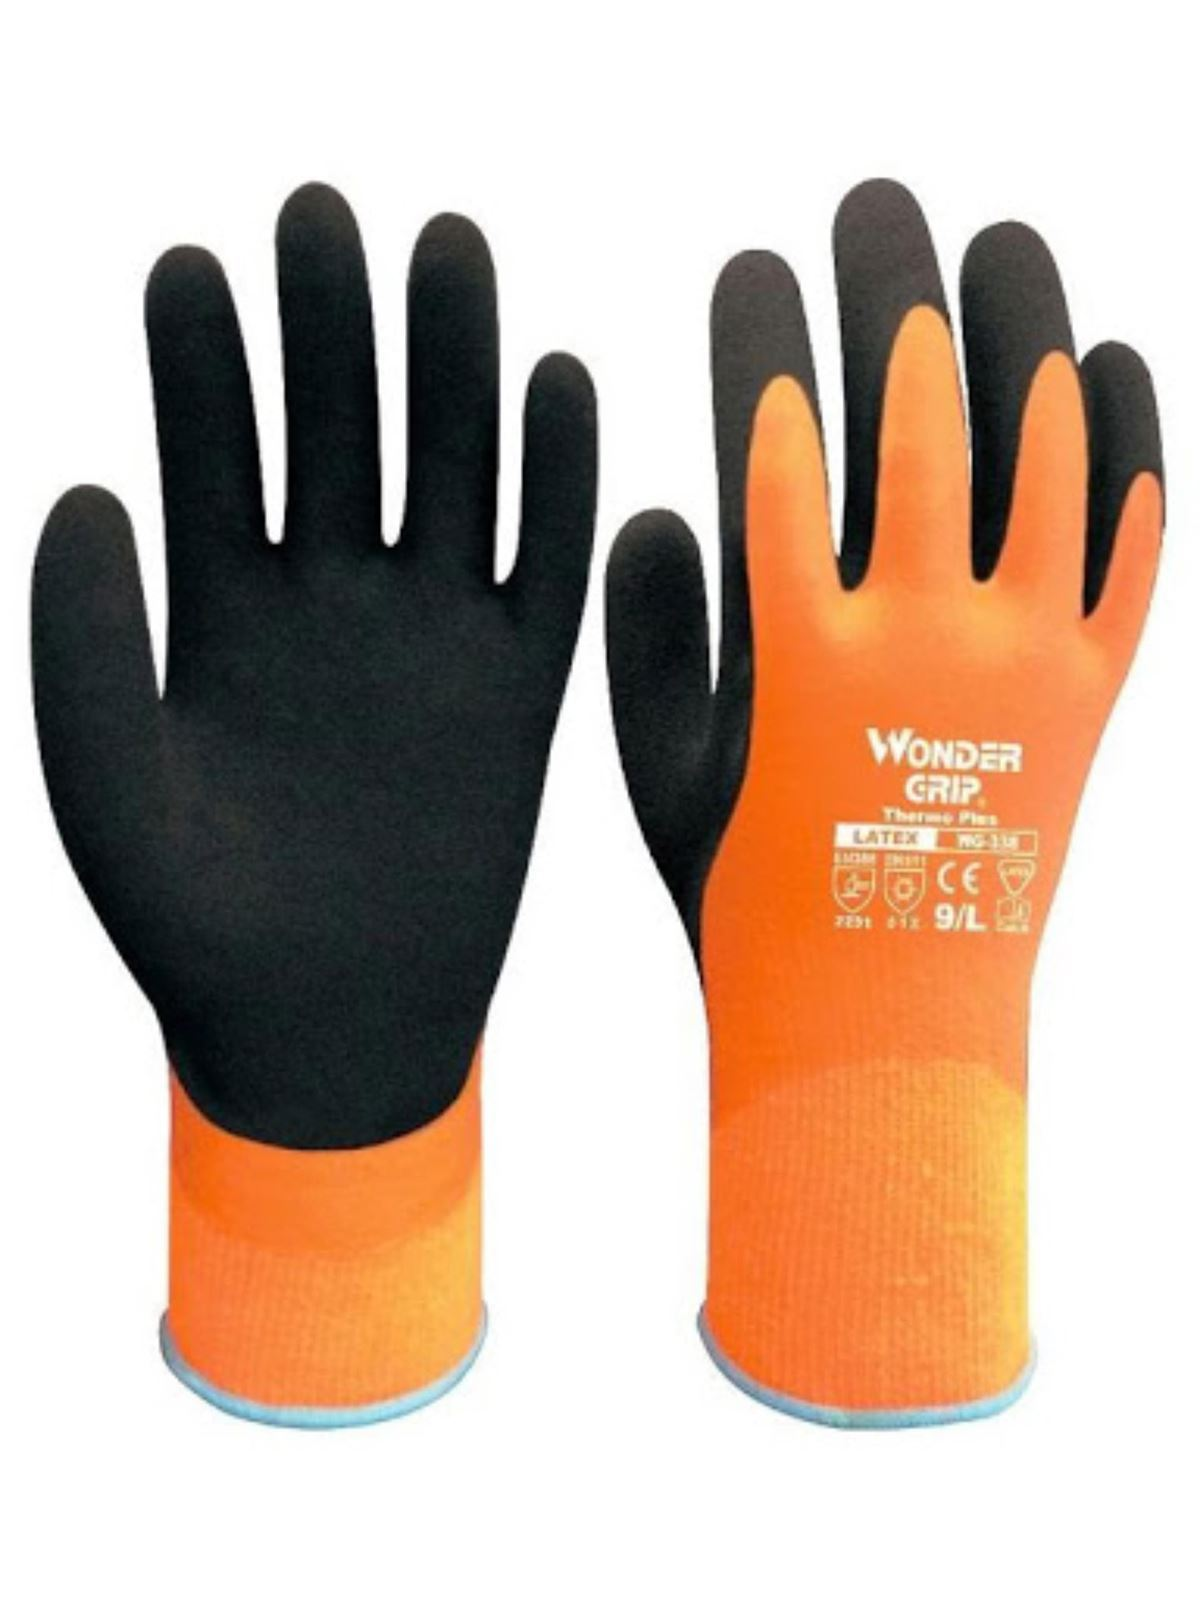 Guantes Wonder Grip Thermo Plus - Imagen 1